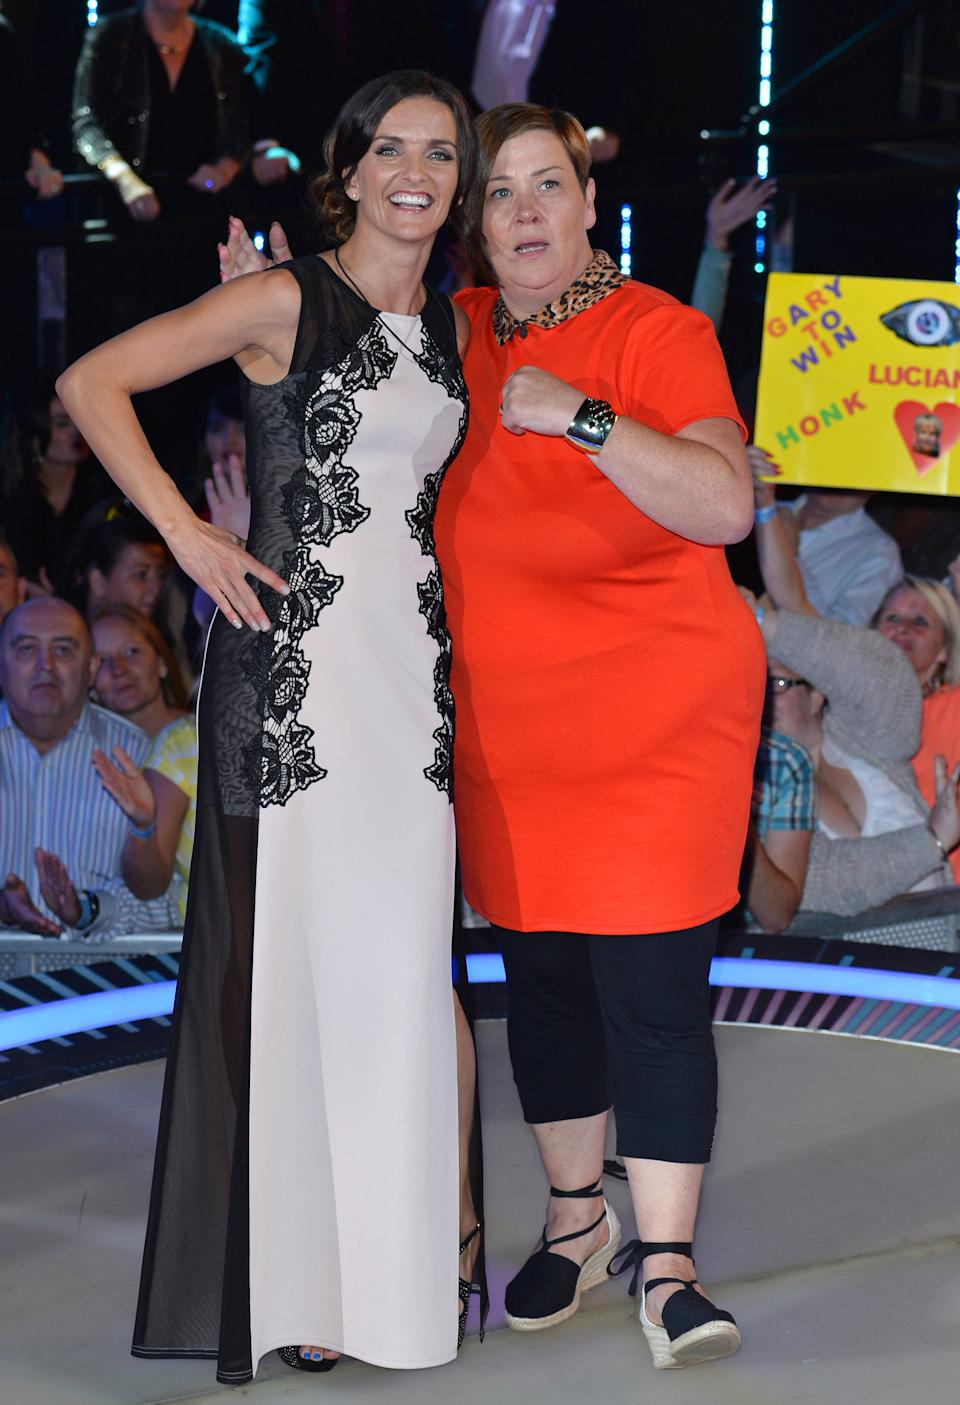 Edele Lynch and Dee Kelly are evicted from the Celebrity Big Brother house at Elstree Studios on September 12, 2014 in Borehamwood, England.  (Photo by Karwai Tang/WireImage)